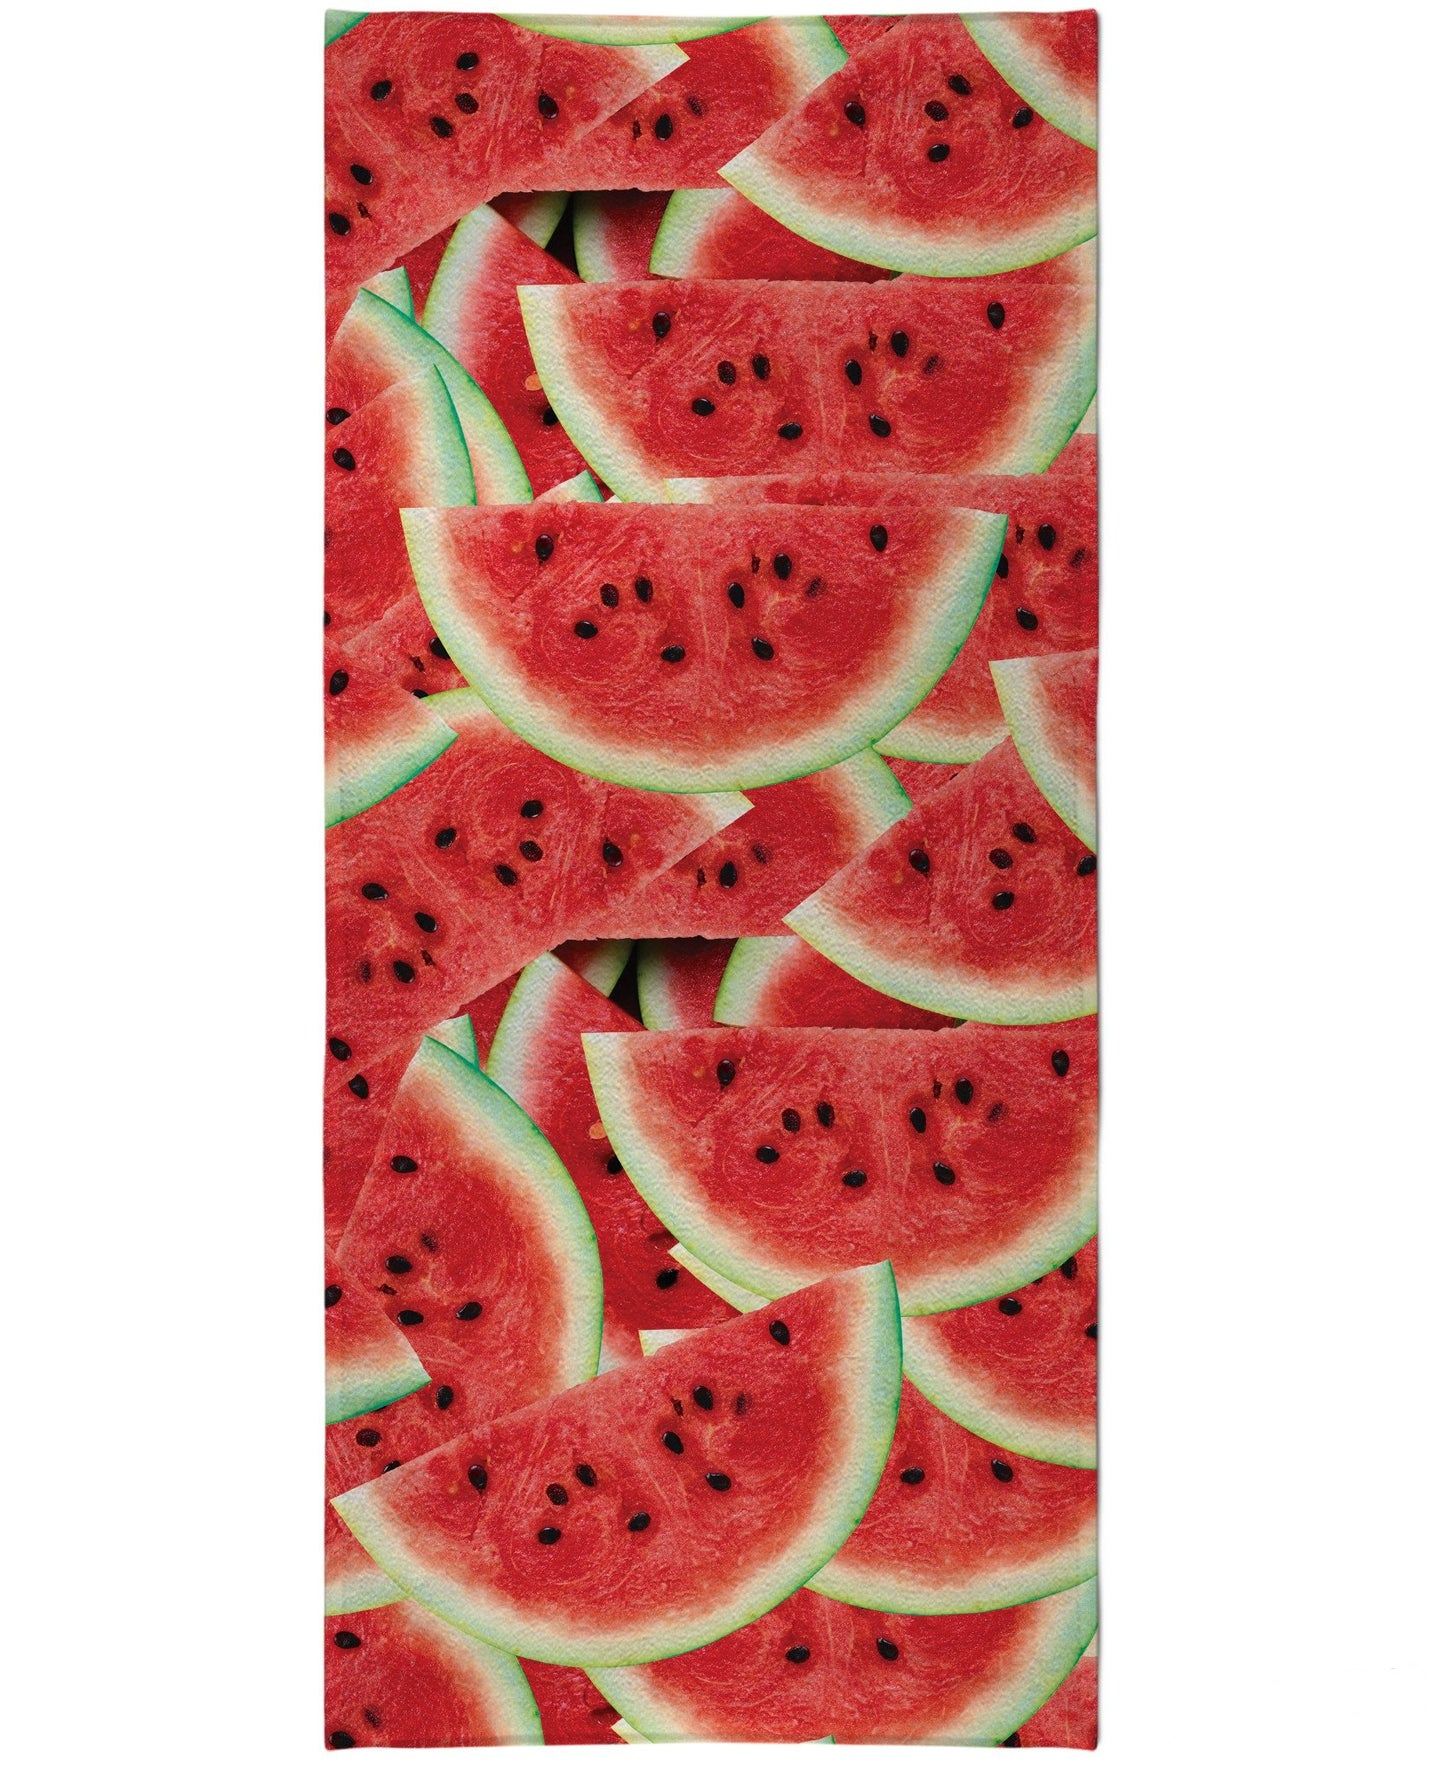 Watermelon Beach Towel - Adult Swim Time